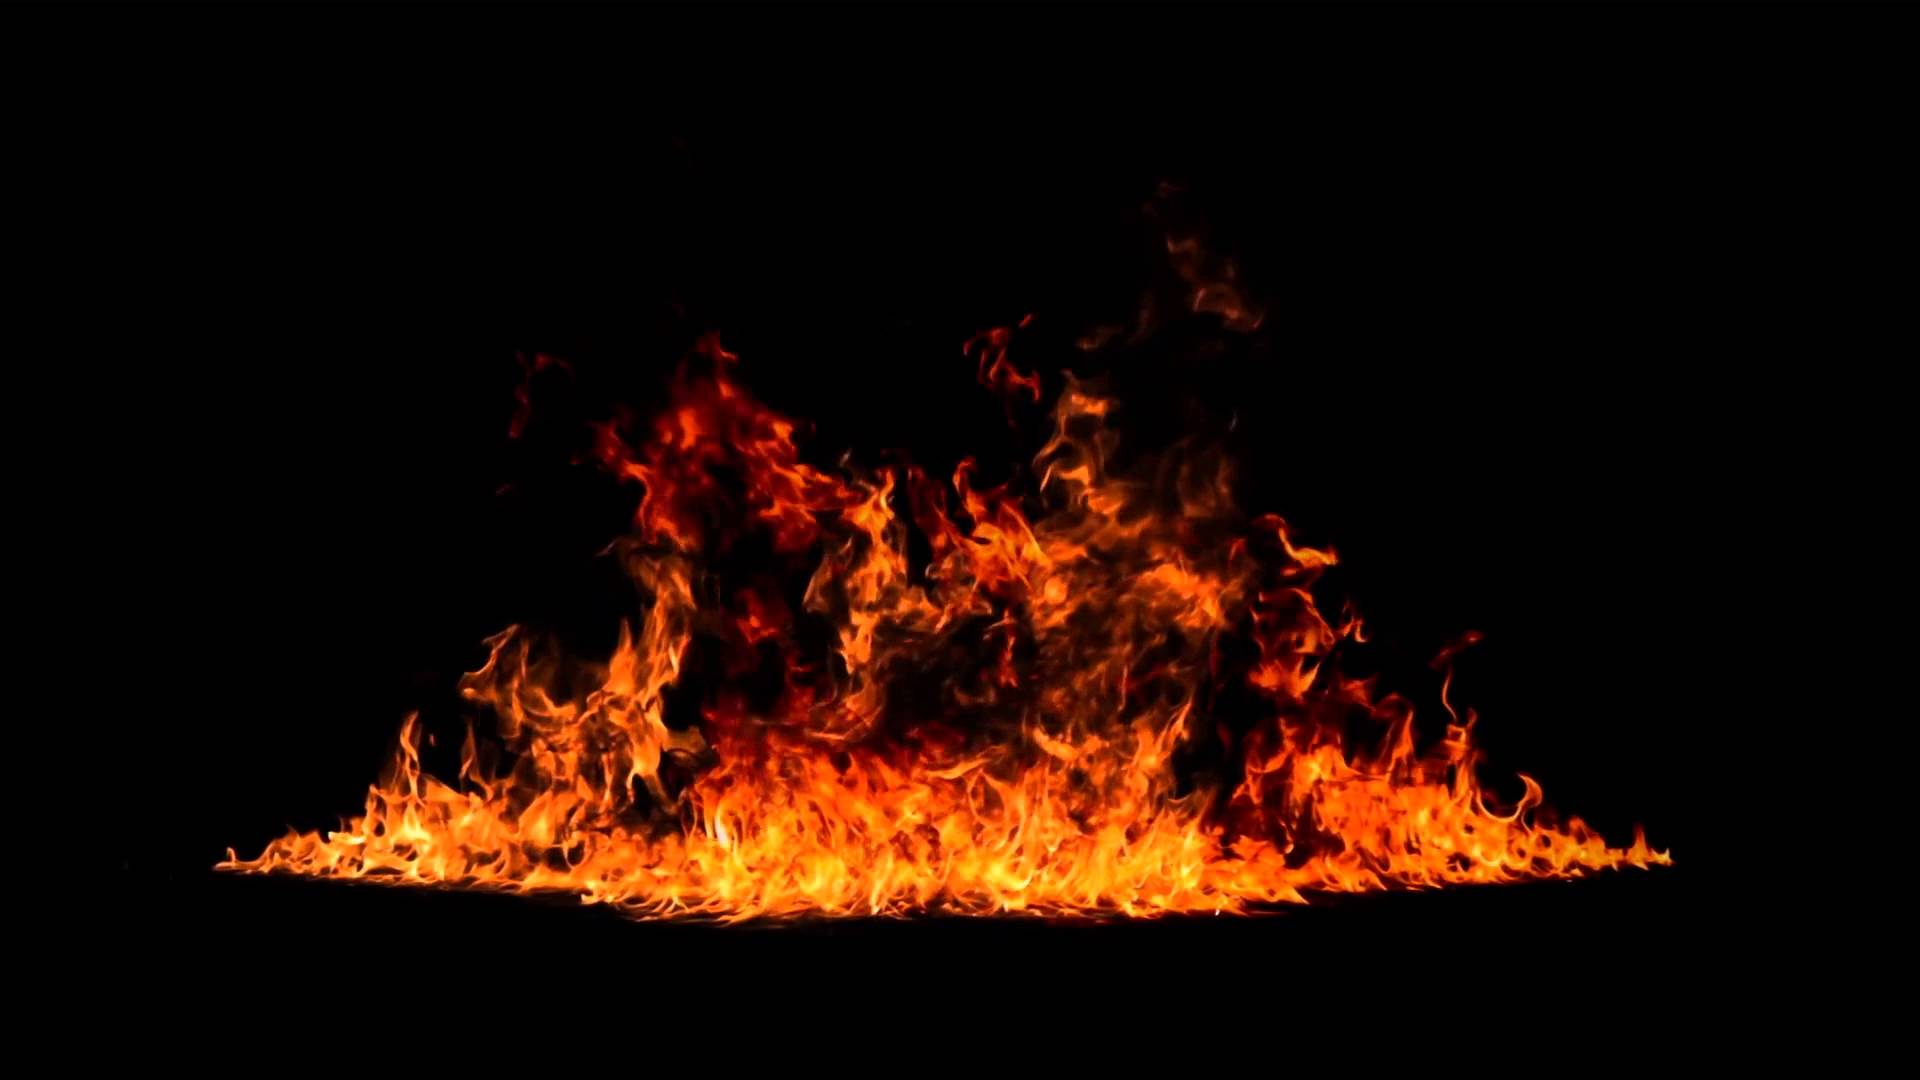 Fire Flames (Free Stock Footage) HD 1080P - YouTube